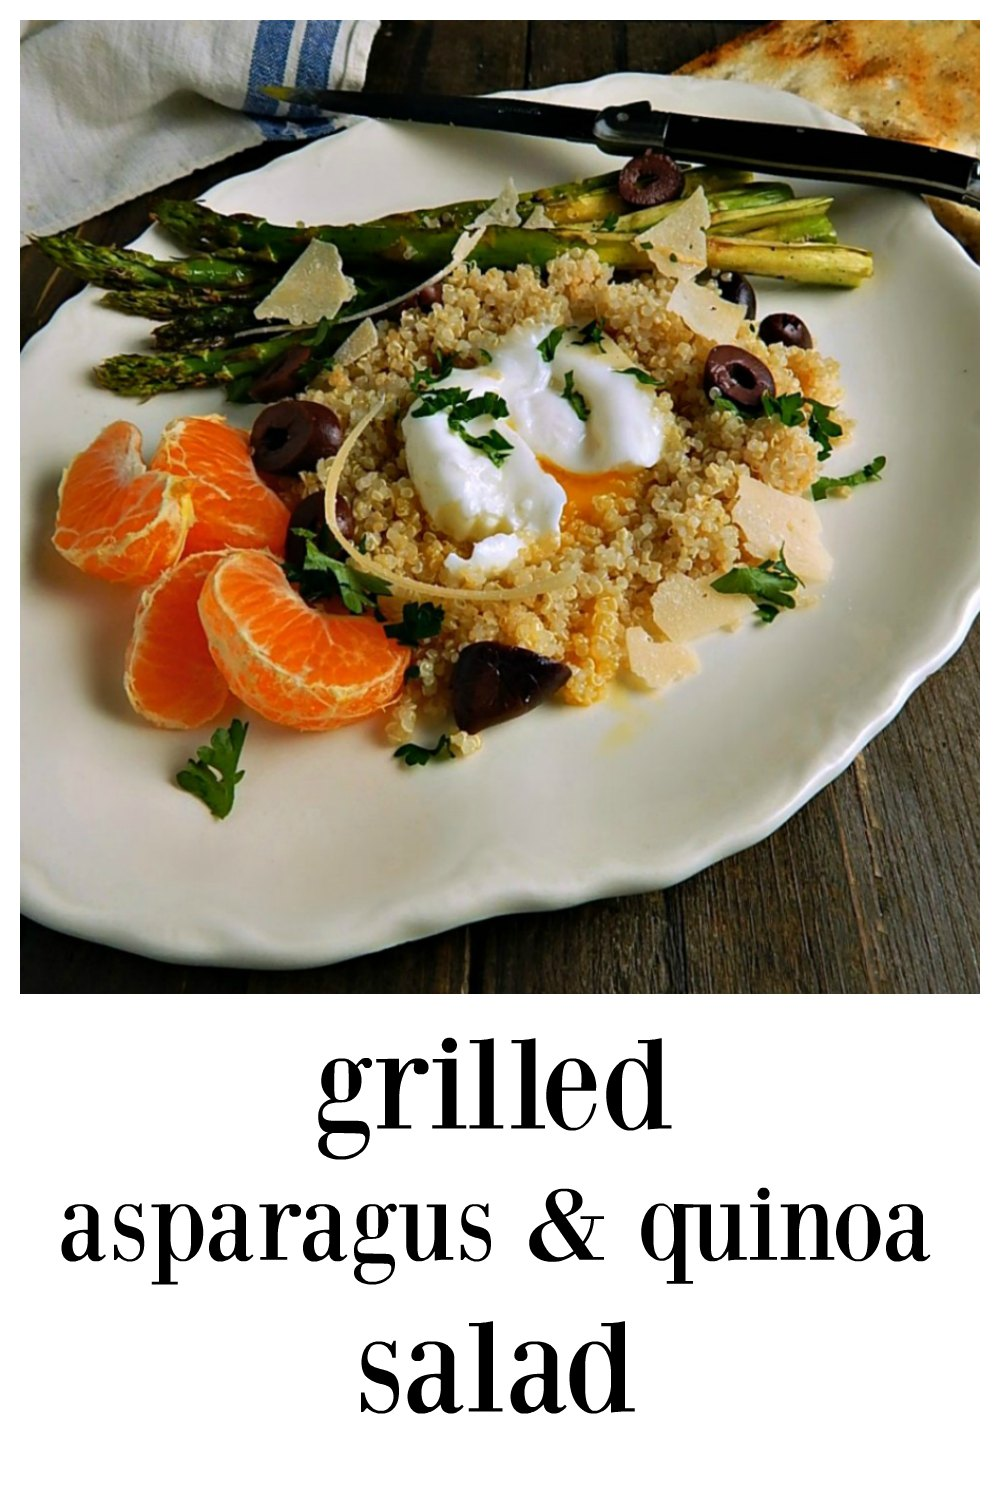 Grilled Asparagus and Quinoa Salad - fabulous grilled asparagus, quinoa, olives, shaved Parmesan and a citrus vinaigrette. Top with an egg! You'll think you're in a Bistro and a lot of this is make ahead. #Asparagus #Quionoa #AsparagusQuinoaSalad